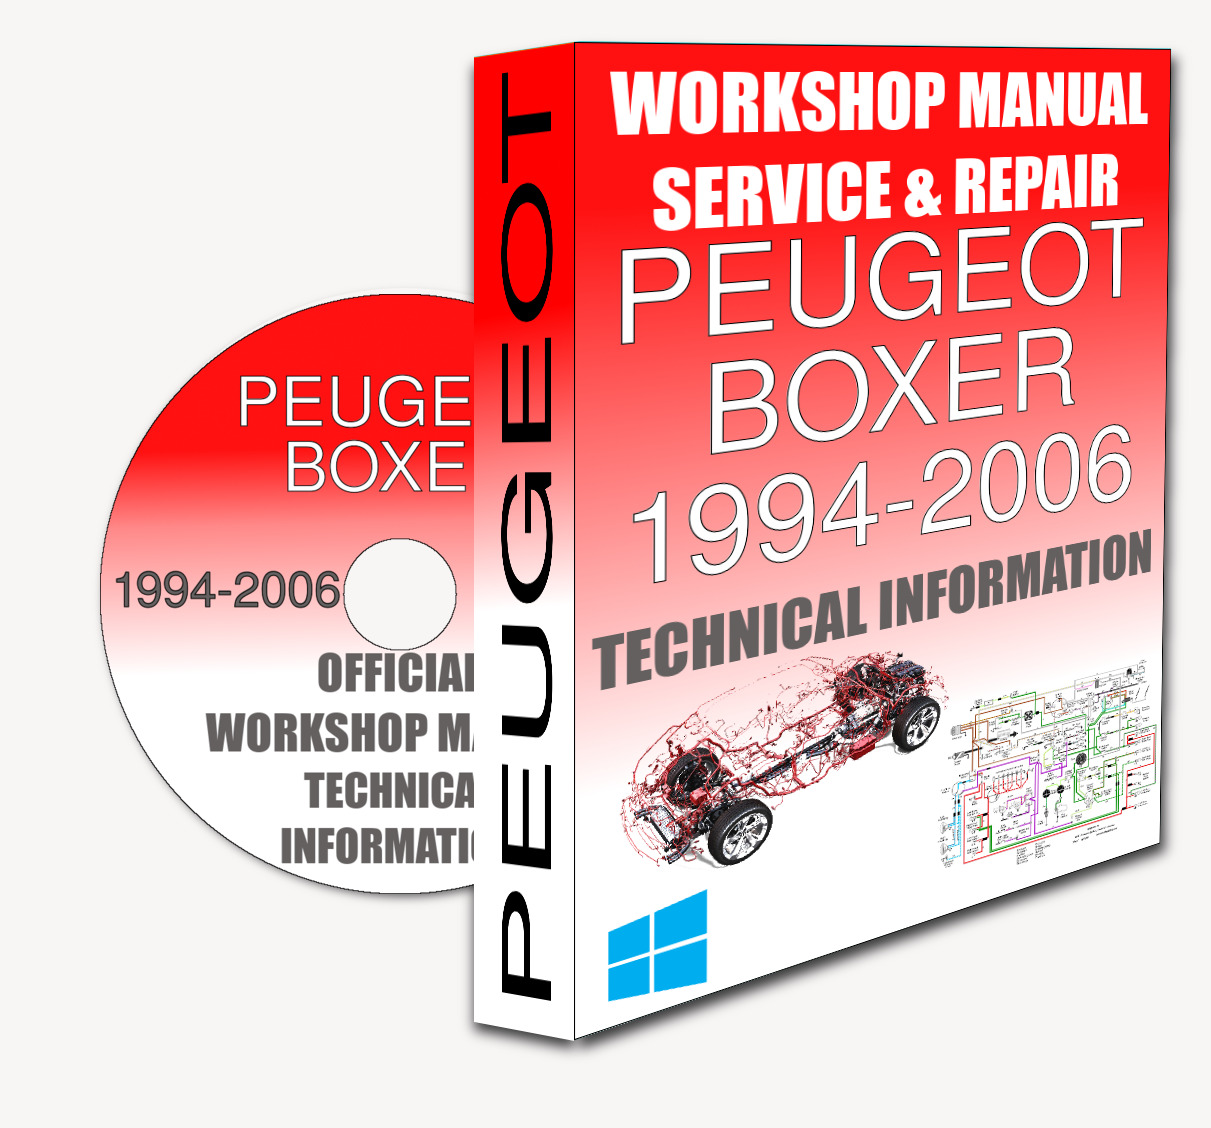 Service Workshop Manual Repair Peugeot Boxer 1994 2006 Wiring Problems 1 Sur 1seulement 2 Disponibles